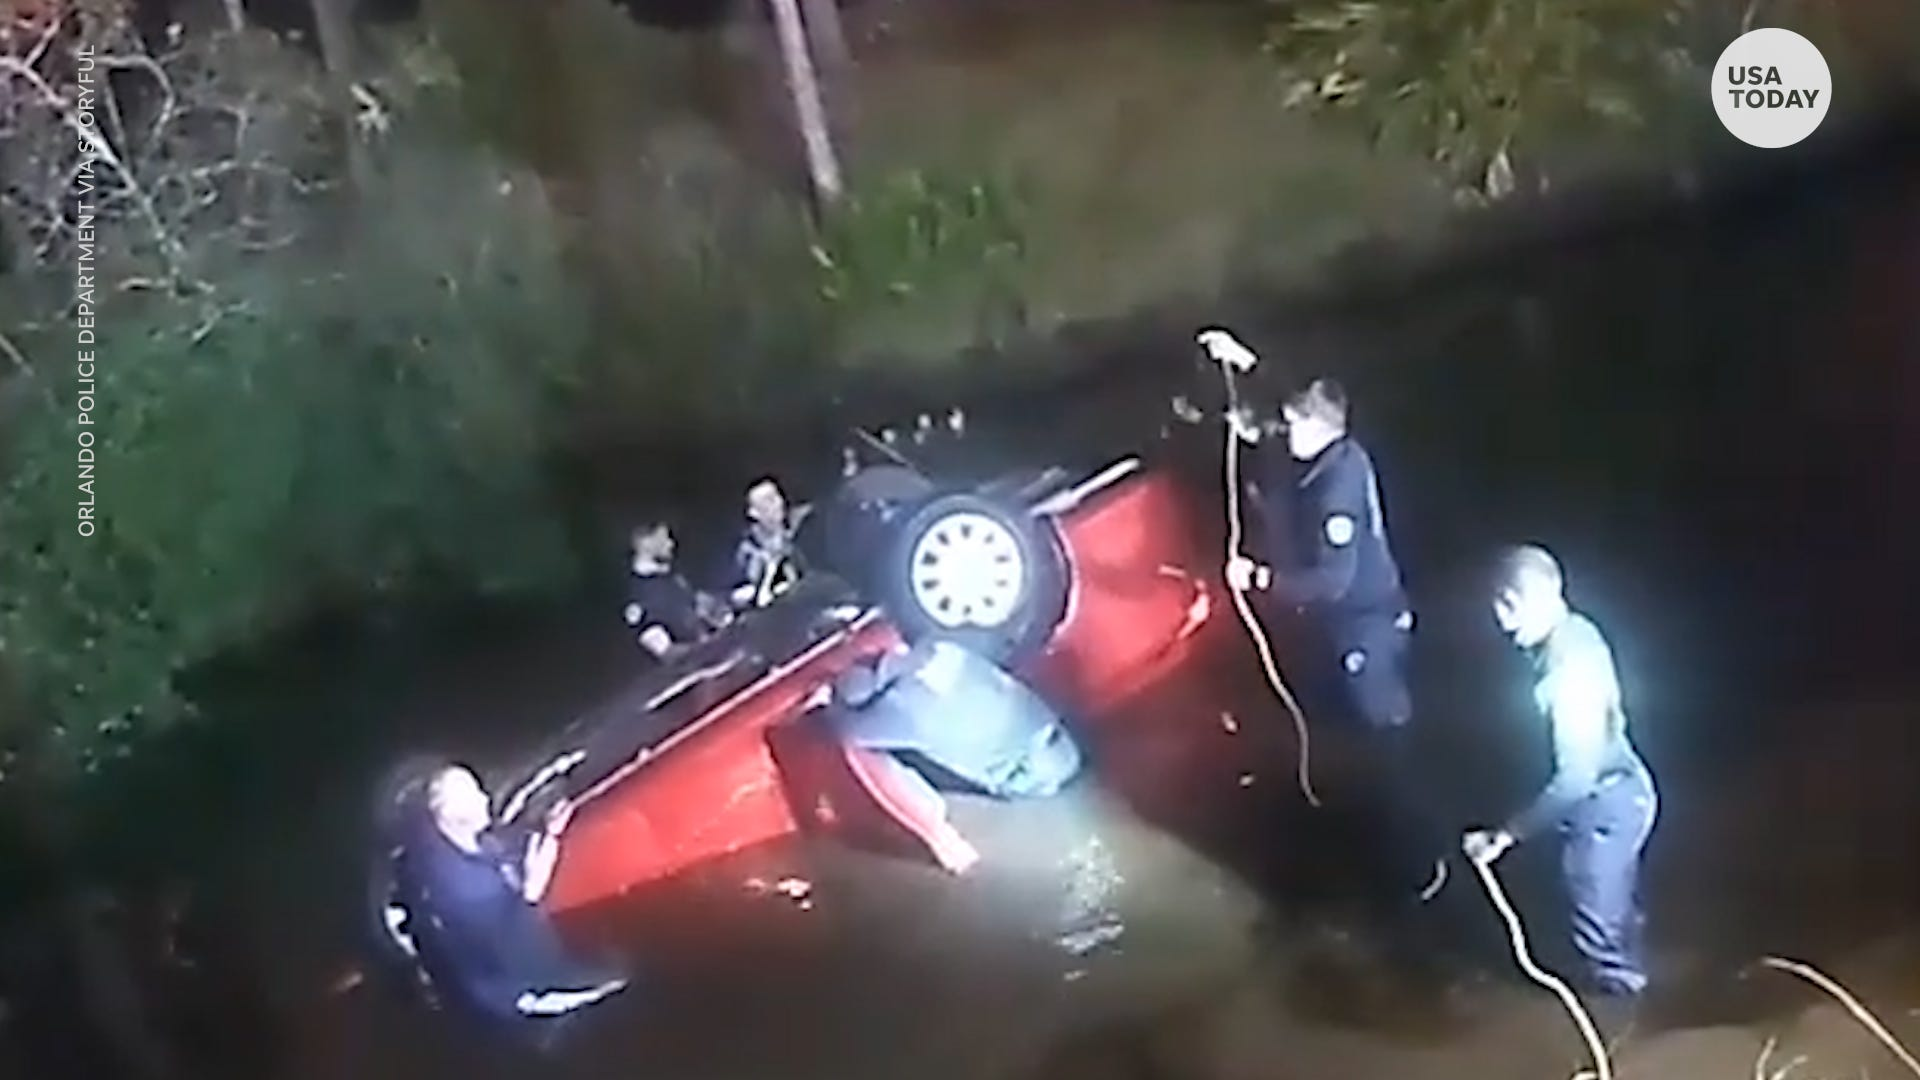 Orlando police and firefighters save family trapped in their car that landed in a pond